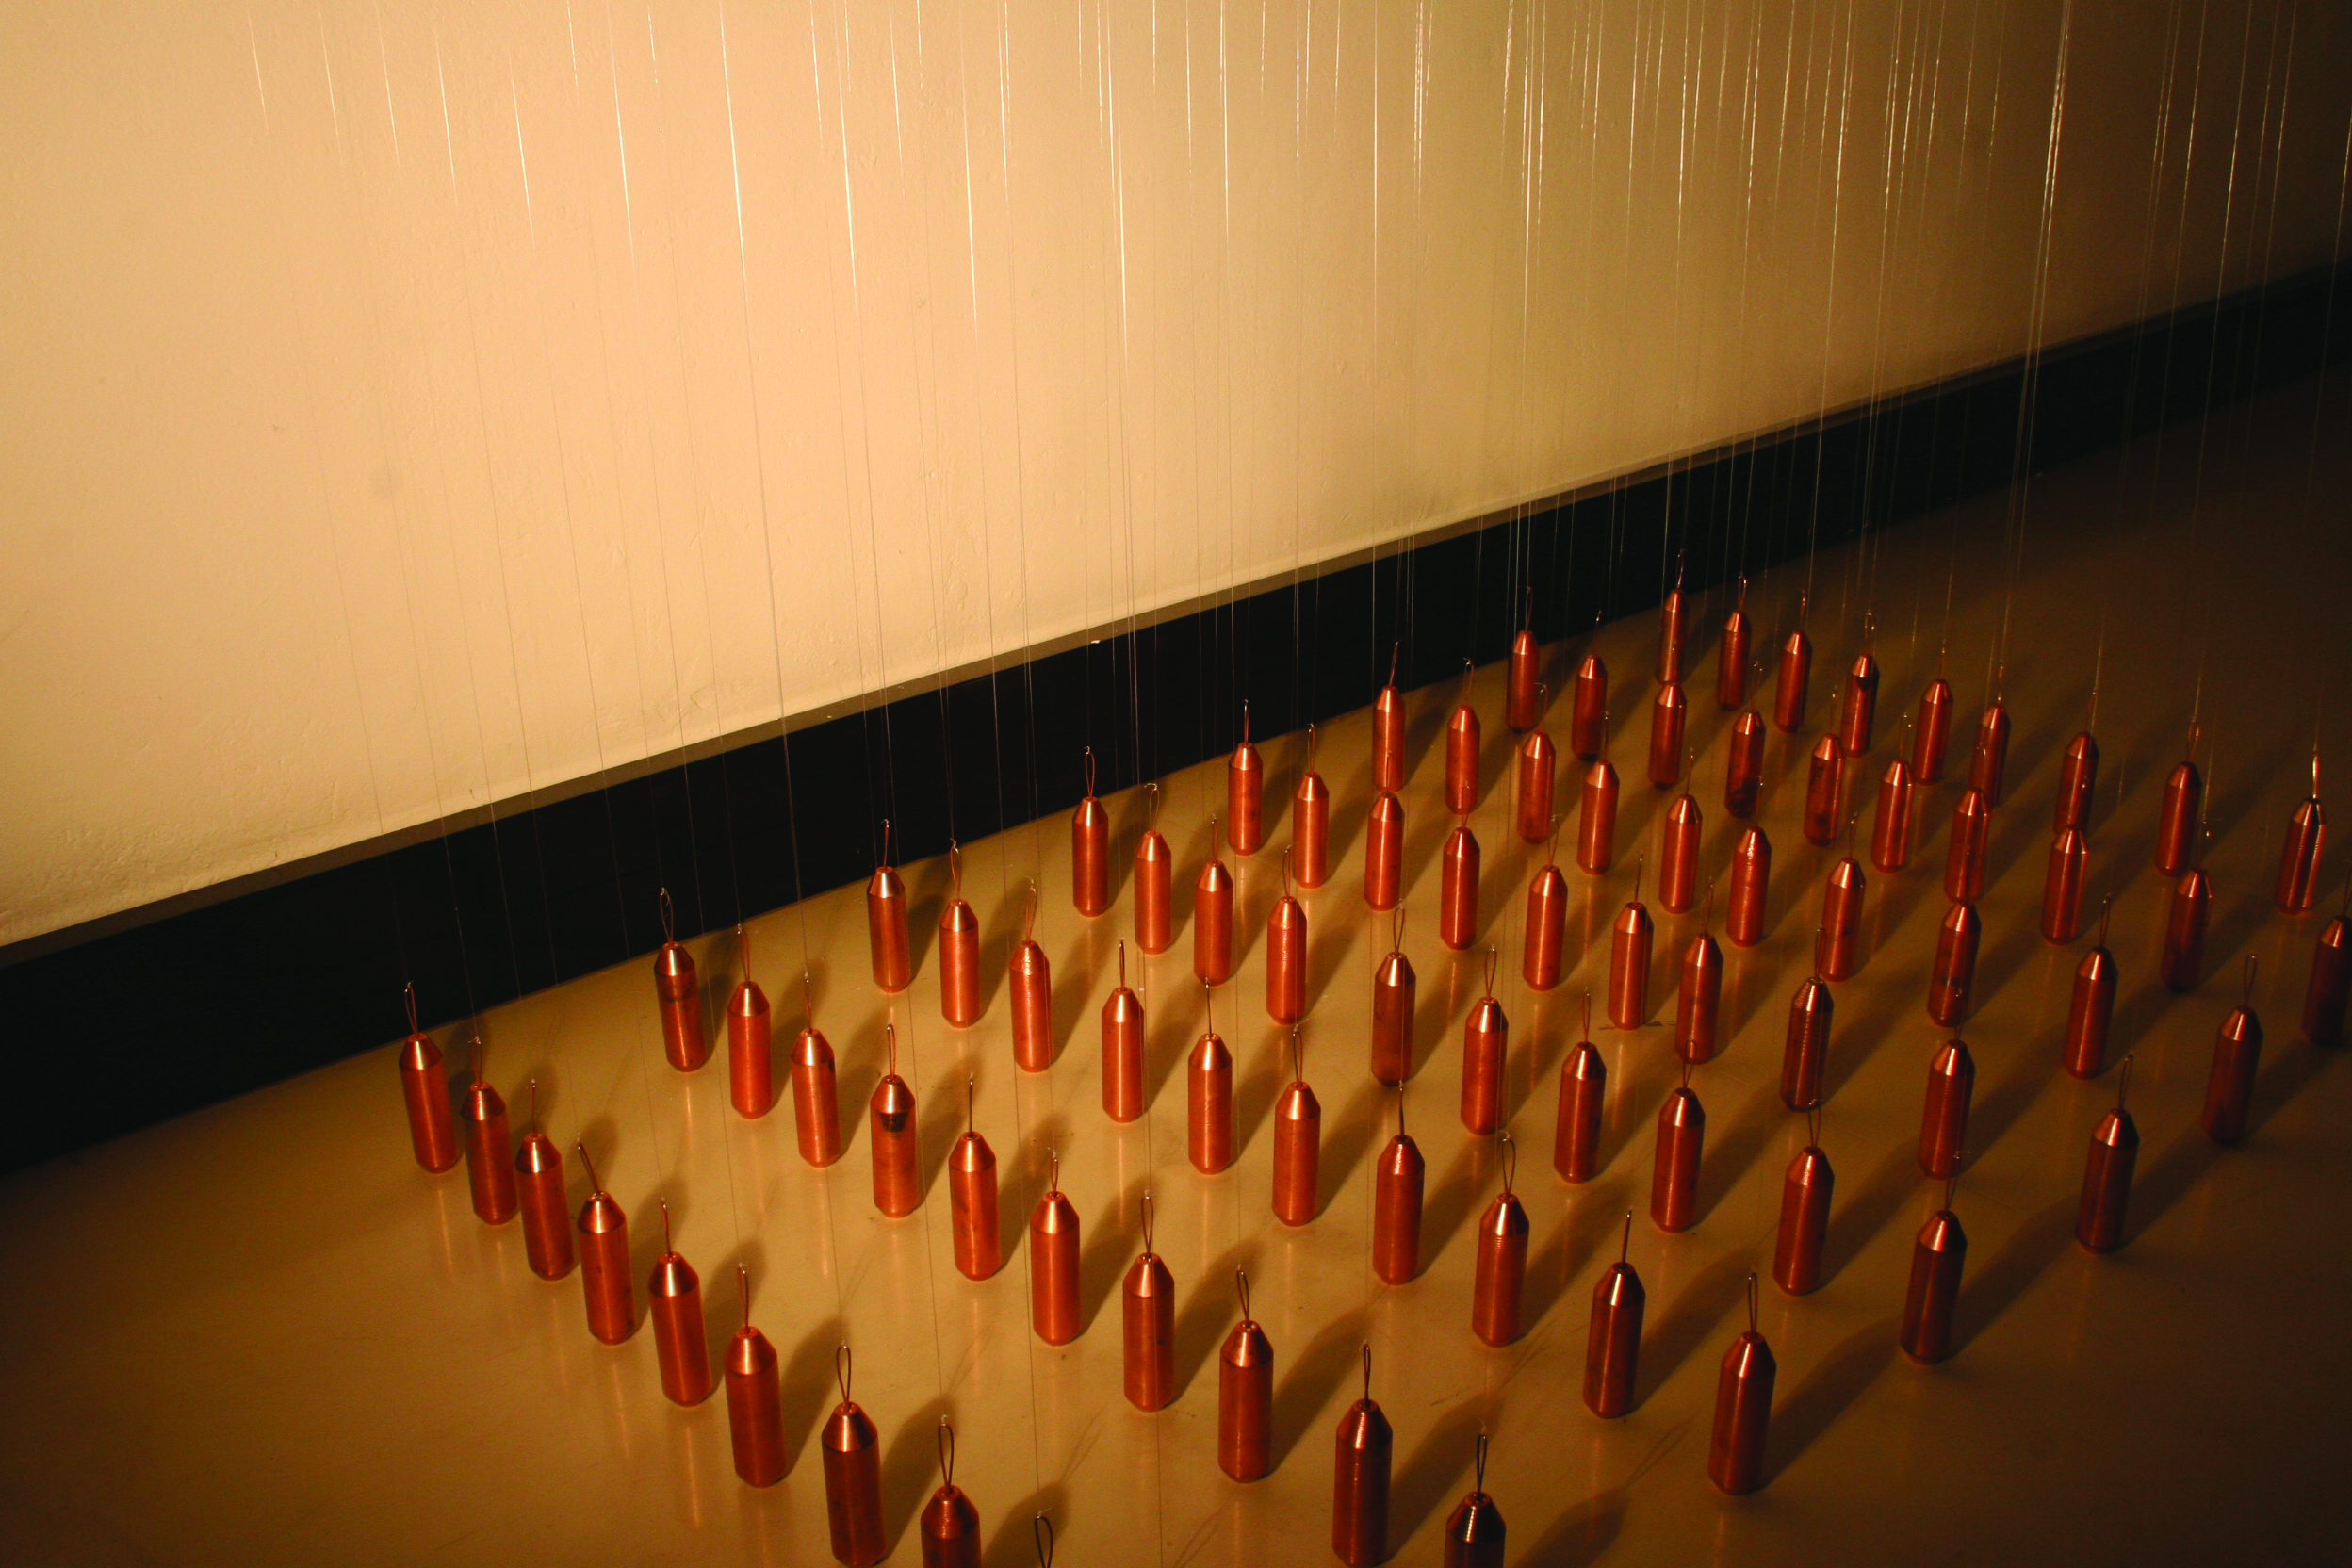 Bronwyn Lace_ Verticality, Height and Mass_ 2009_performance_installation (2).jpg